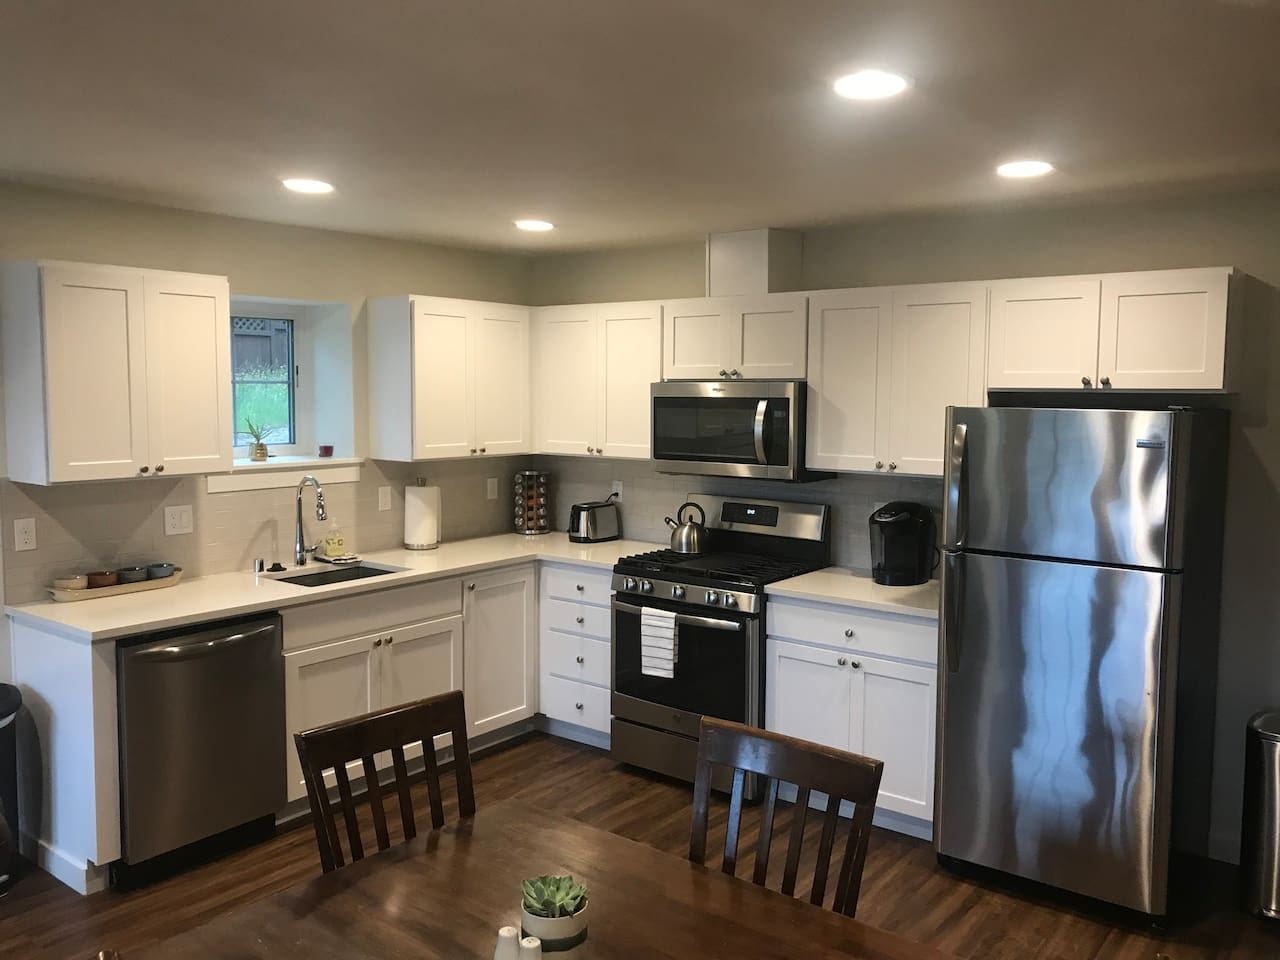 You will love cooking in this kitchen with beautiful countertops and new stainless steel appliances! Spices, utensils, and all the pots and pans you could ever need.